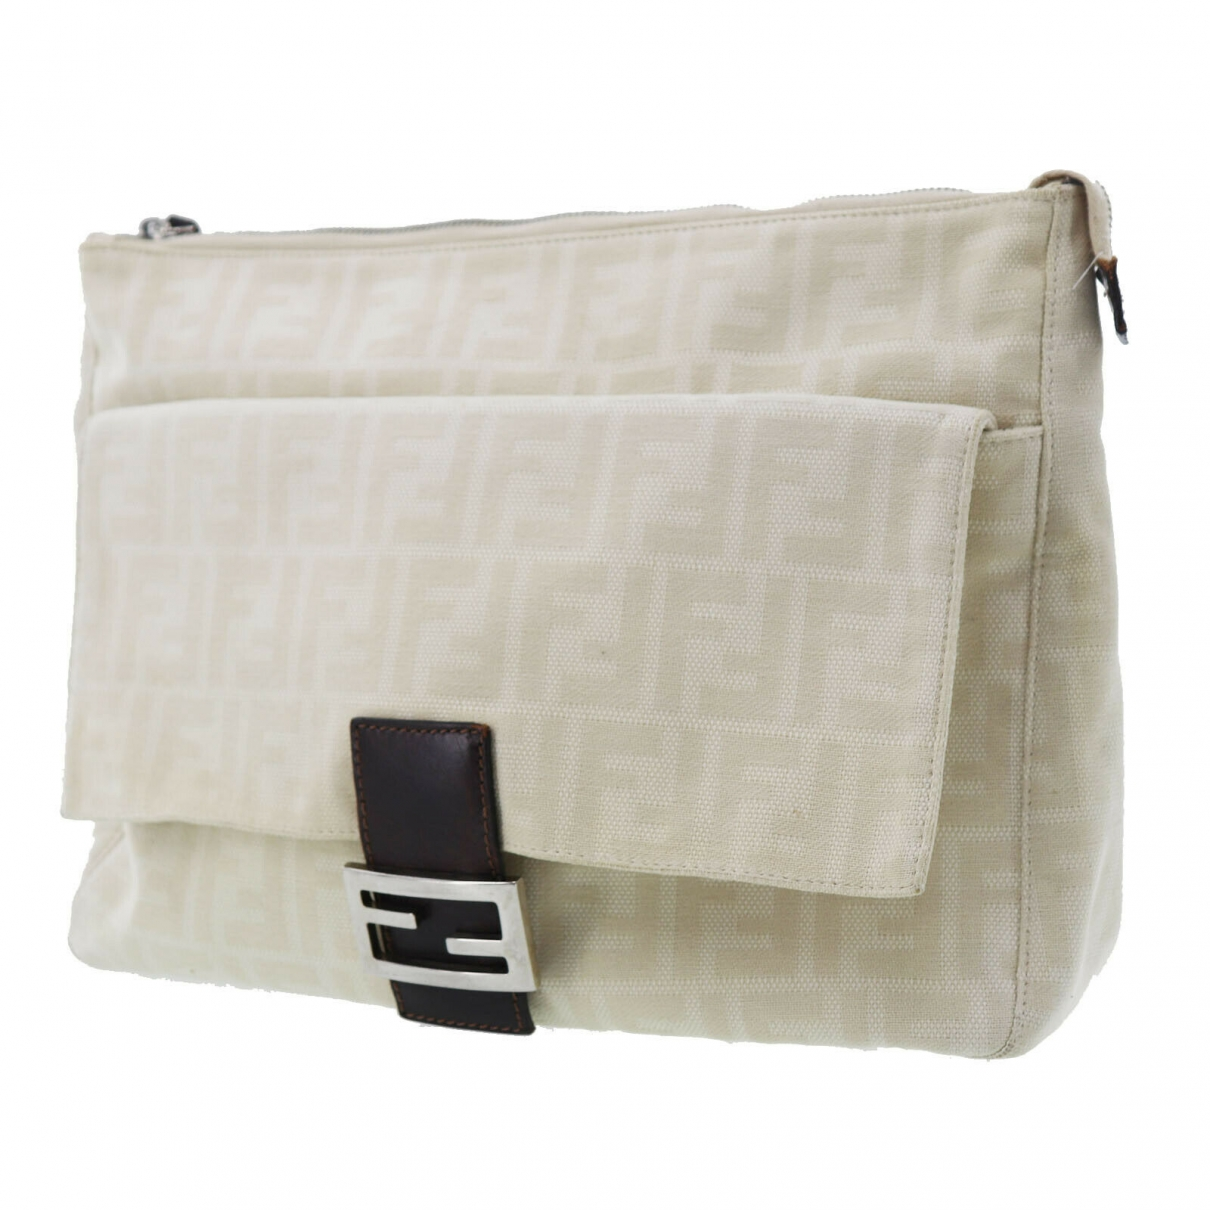 Fendi \N Clutch in  Beige Leder